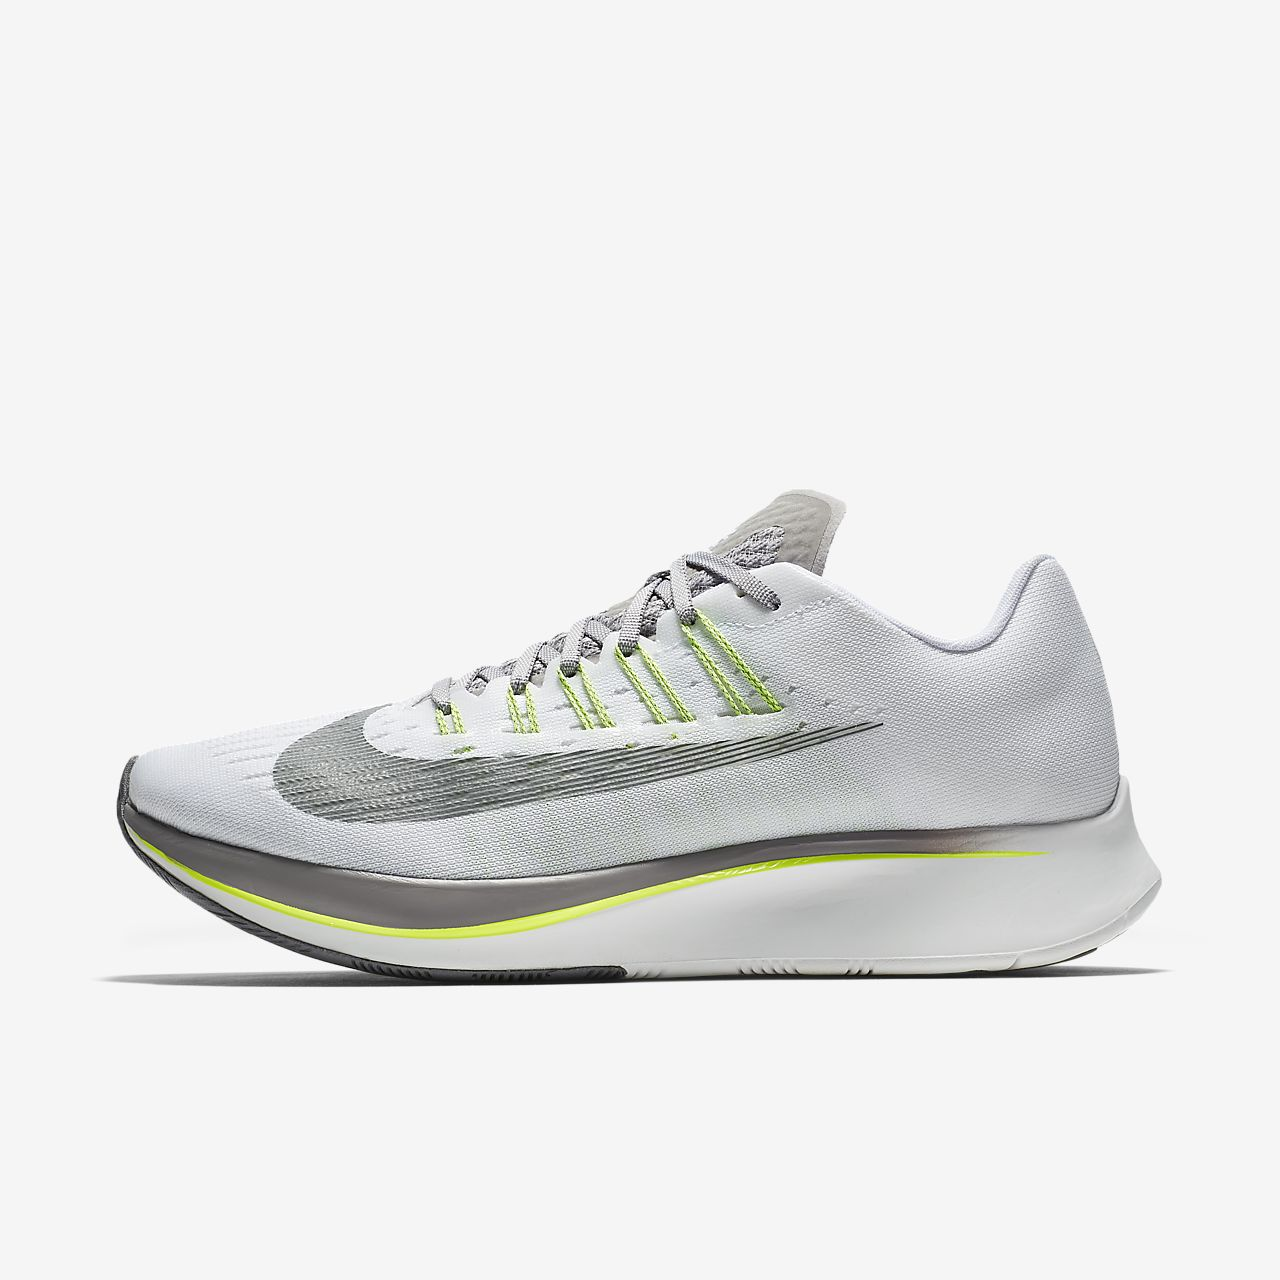 42d137fe774d Nike Zoom Fly Men s Running Shoe. Nike.com